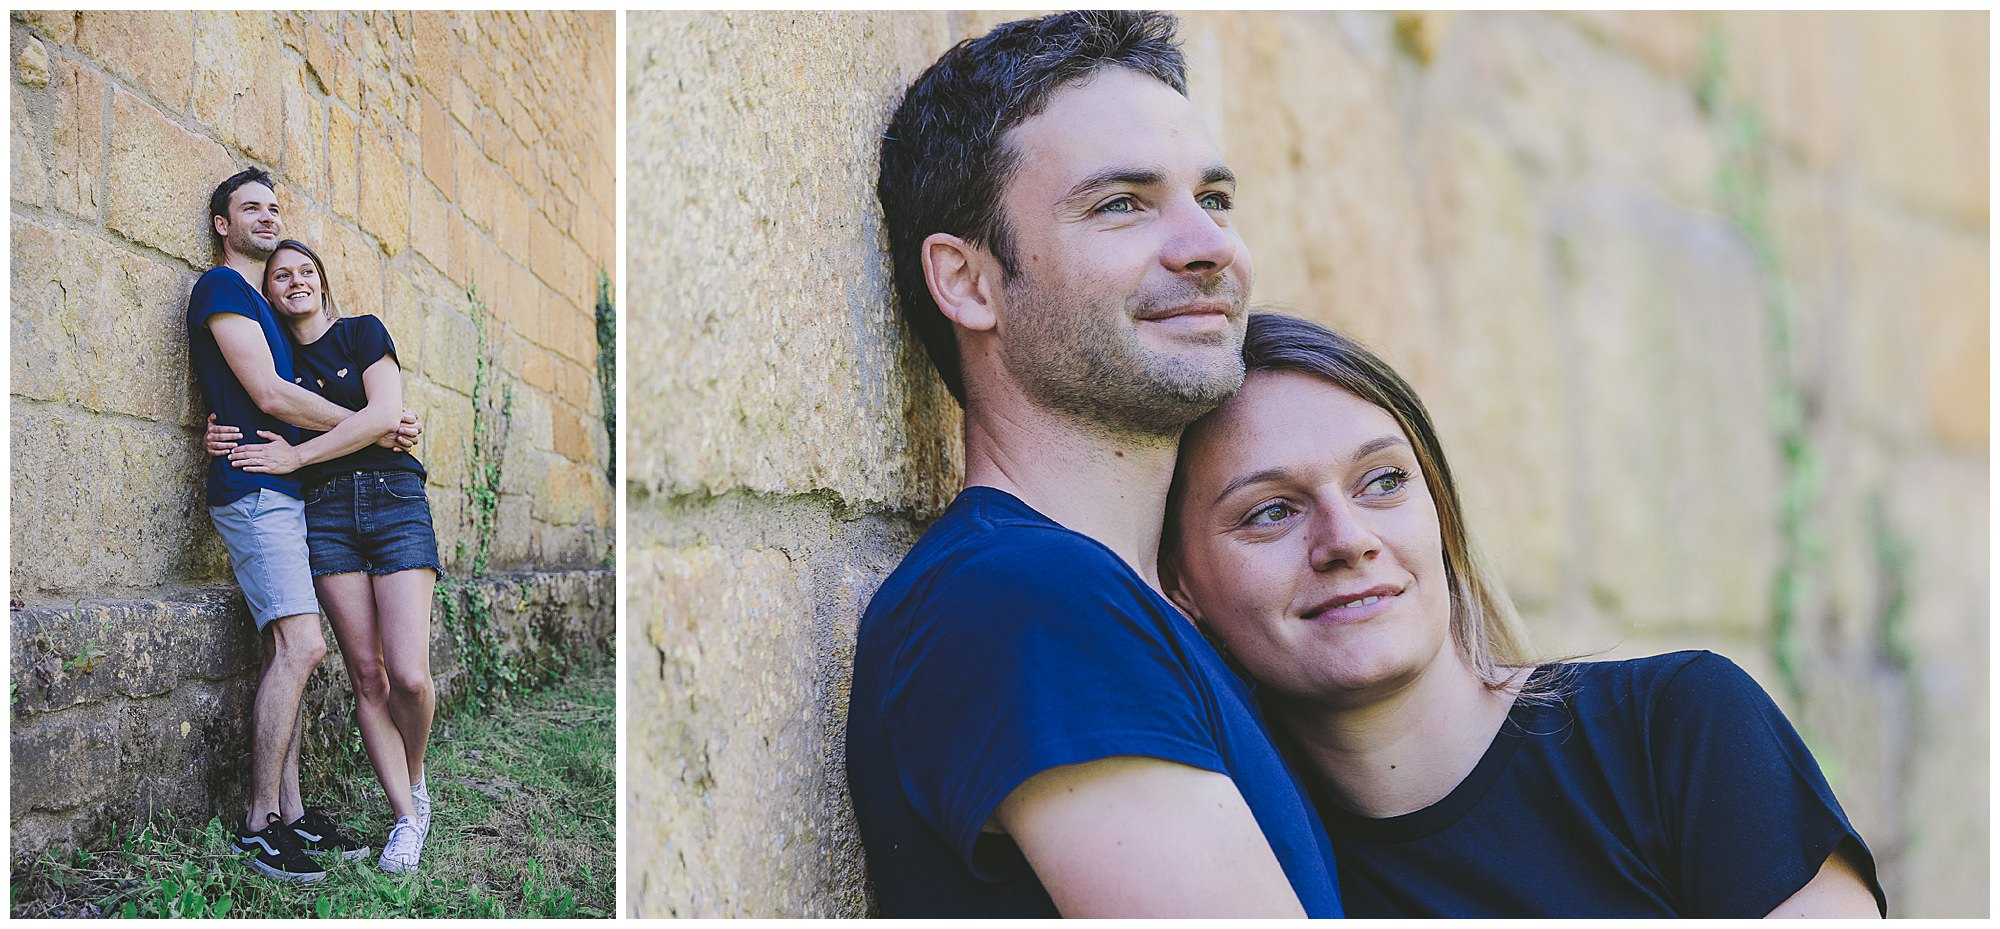 Saint Leon sur Vezere - Love Session - Just M Photographes